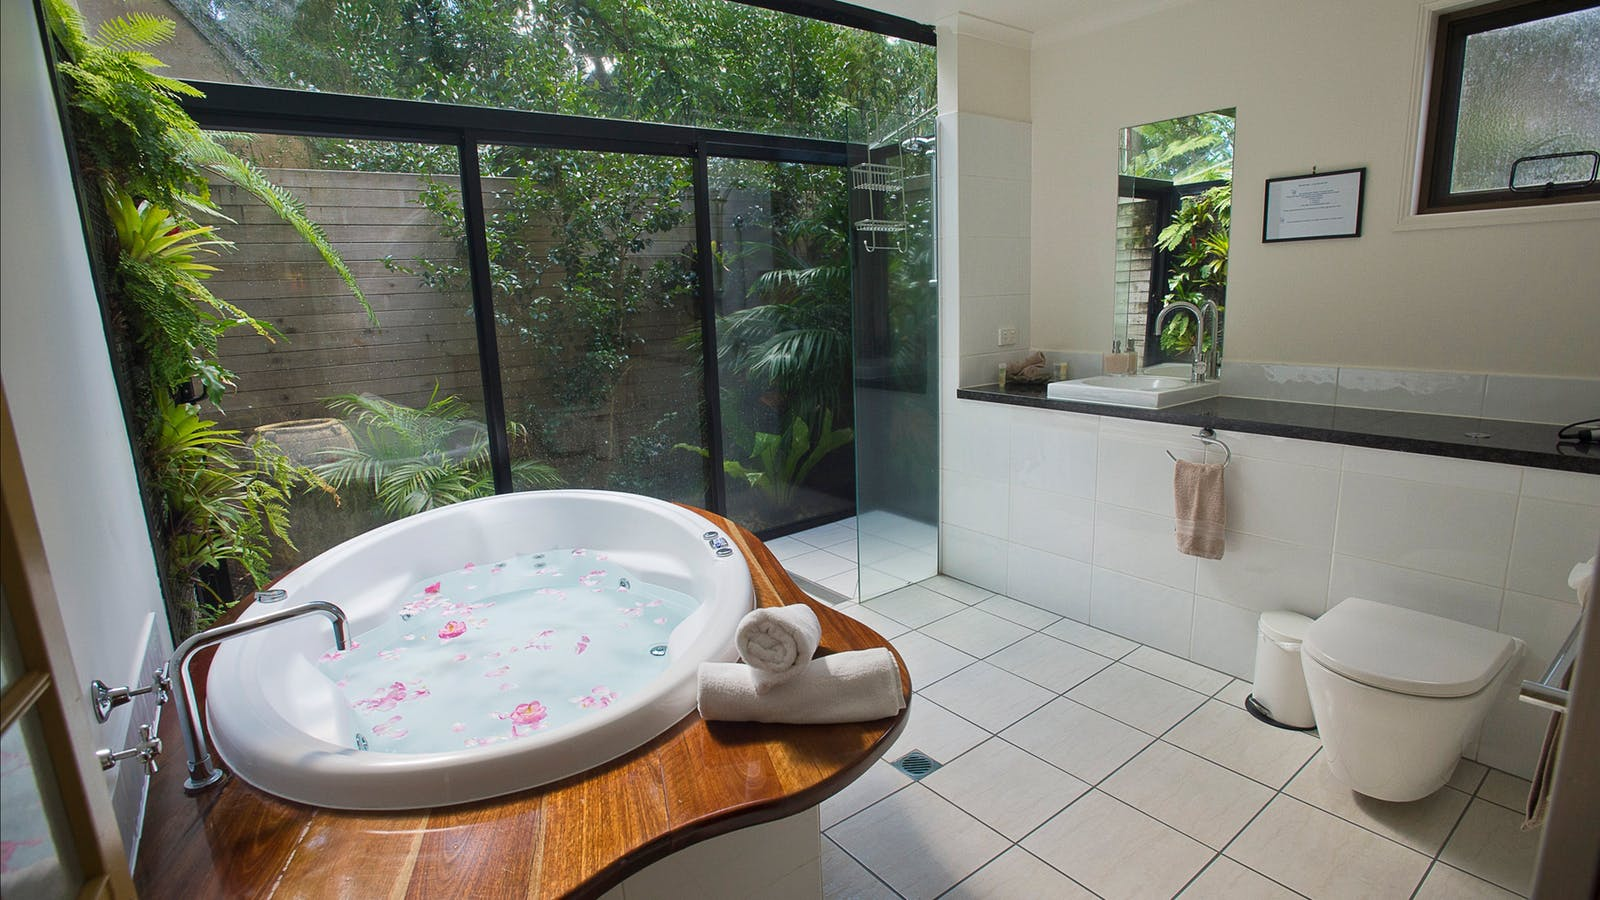 Double Spa in 'outdoor' bathroom